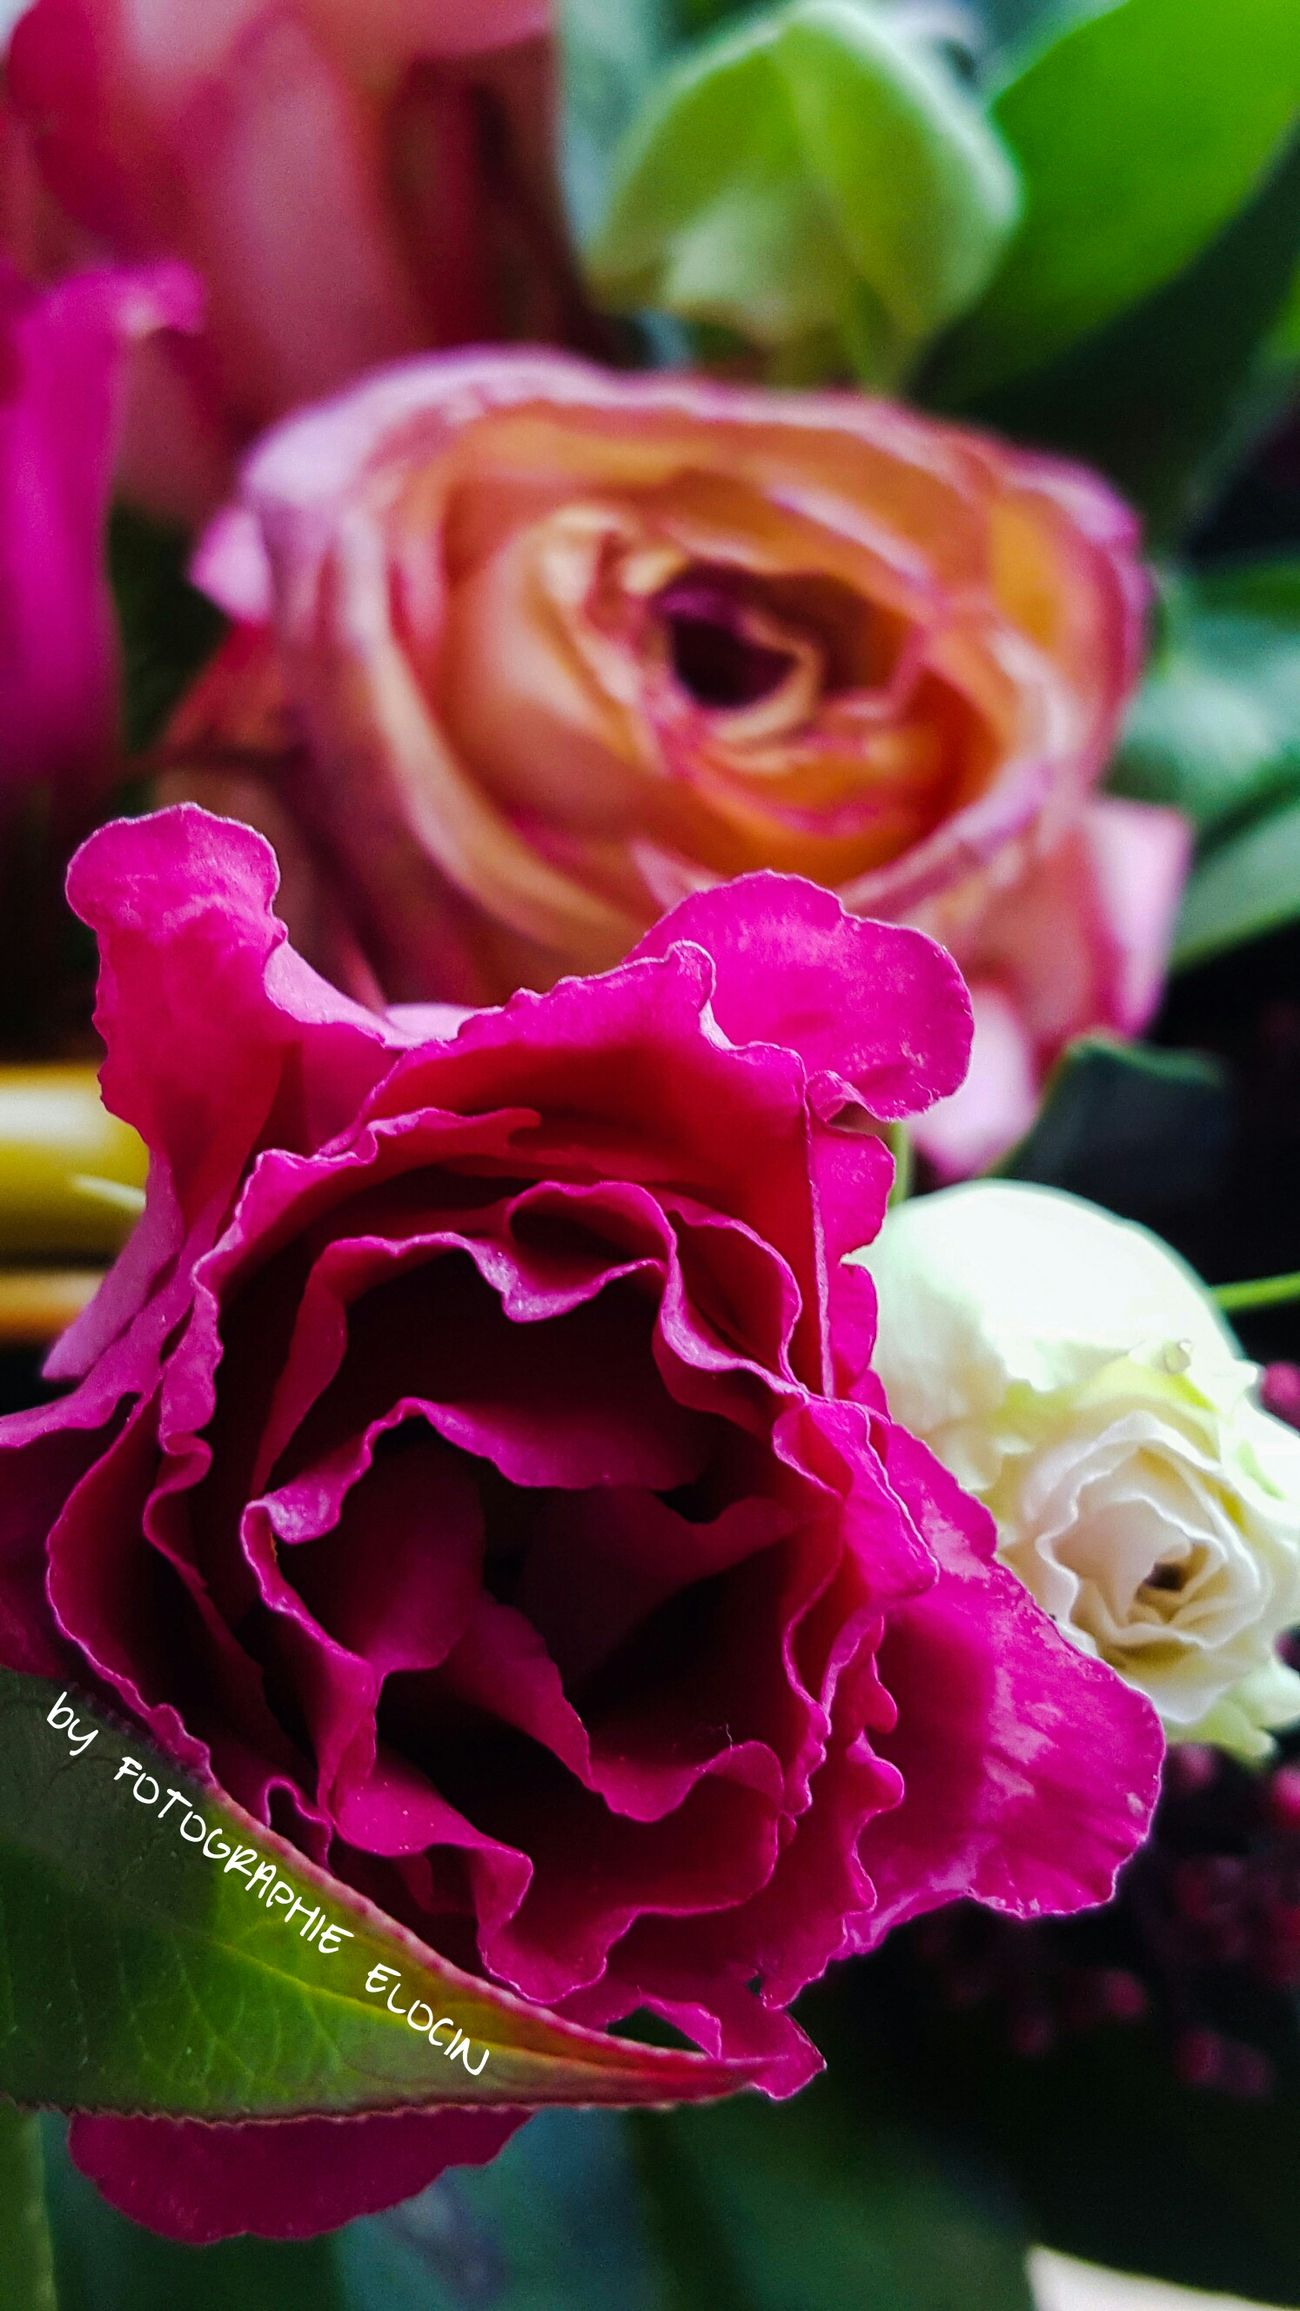 Pink time Flower Rose - Flower Beauty In Nature Pink Color Close-up Focus On Foreground Amatuerphotography Multi Colored Love Nature Fotographie_elocin Macro Photography Flowers, Nature And Beauty Rose🌹 Roses Flowers  Eye4photography  Beauty In Nature Hamburg EyeEm Masterclass Canonphotography EyeEm Nature Lover Detail Amateur Photography Canon_photos Autumn Flowers Eye4photography